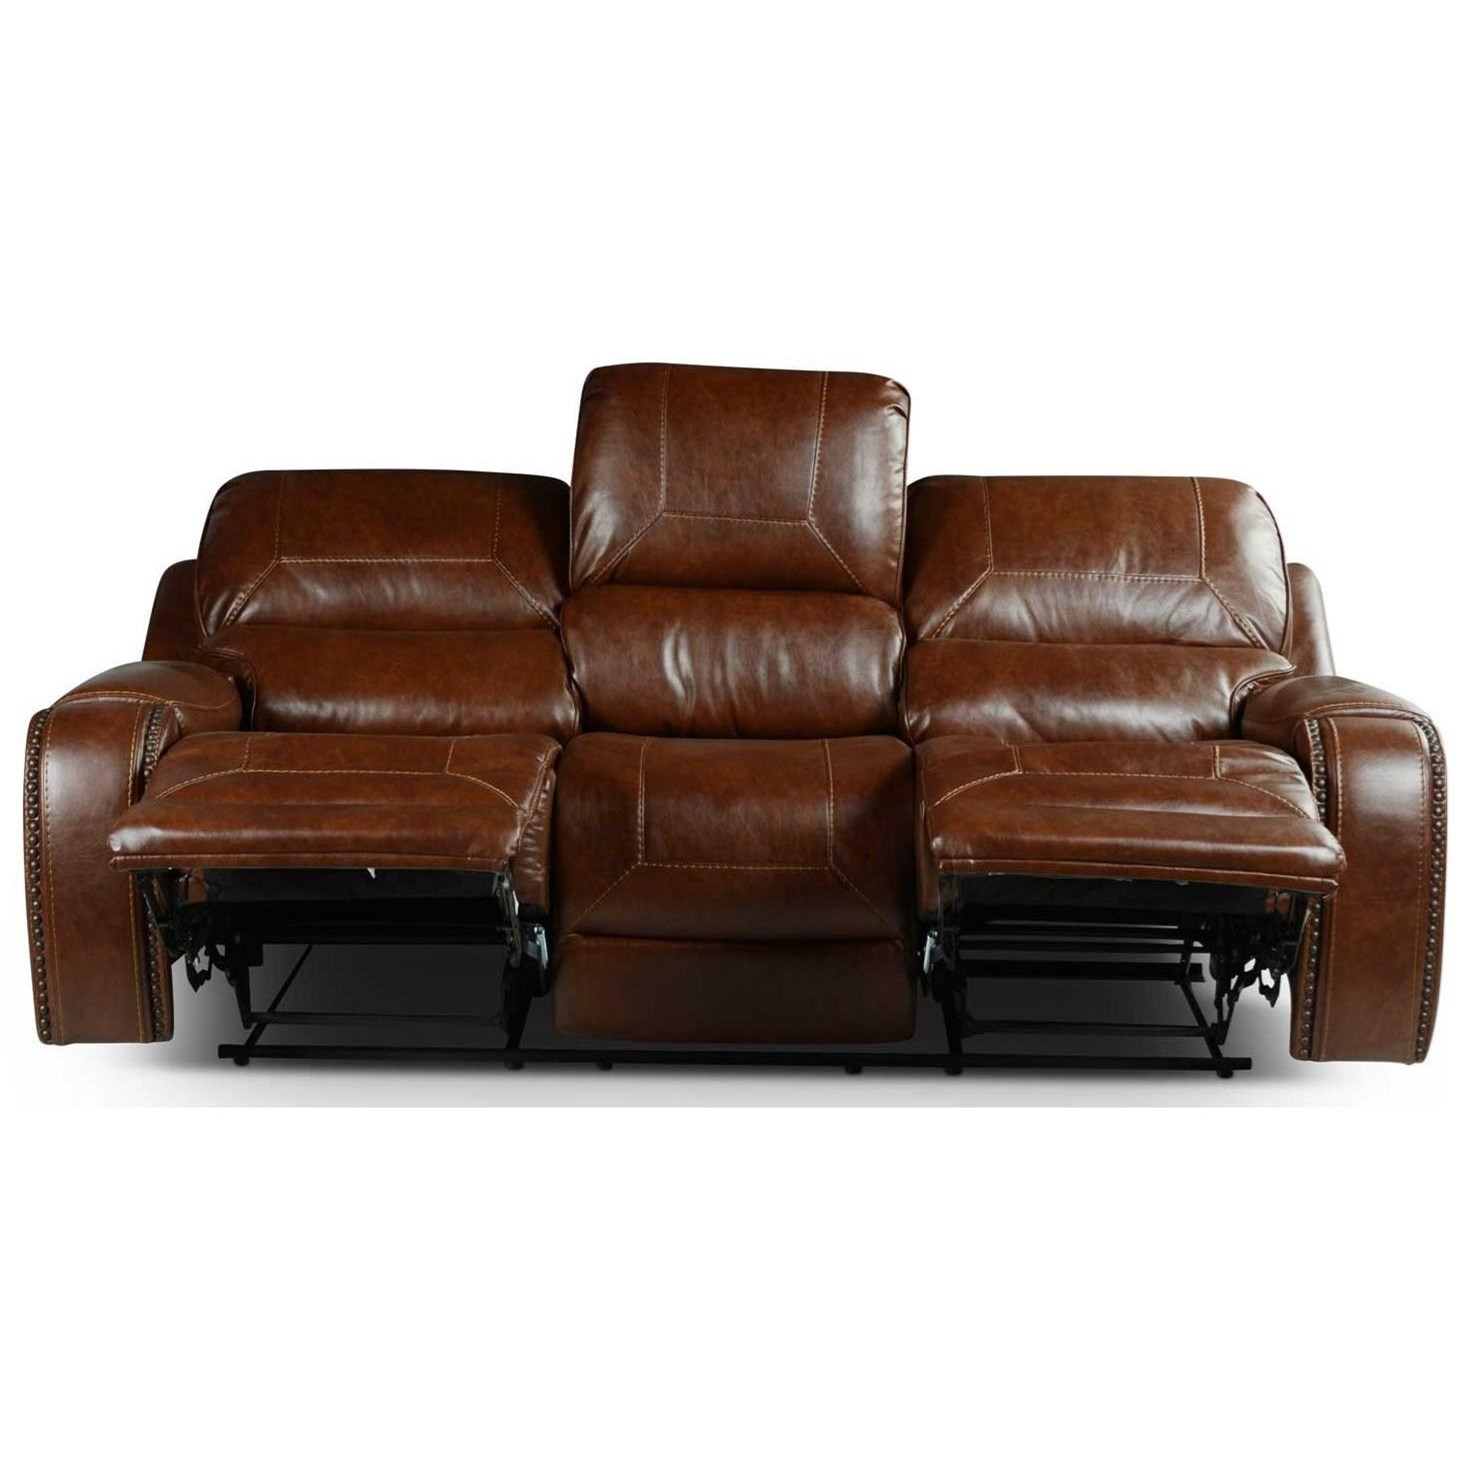 Steve Silver Keily Ke800S Manual Motion Recliner Sofa With In Navigator Gray Manual Reclining Sofas (View 3 of 11)